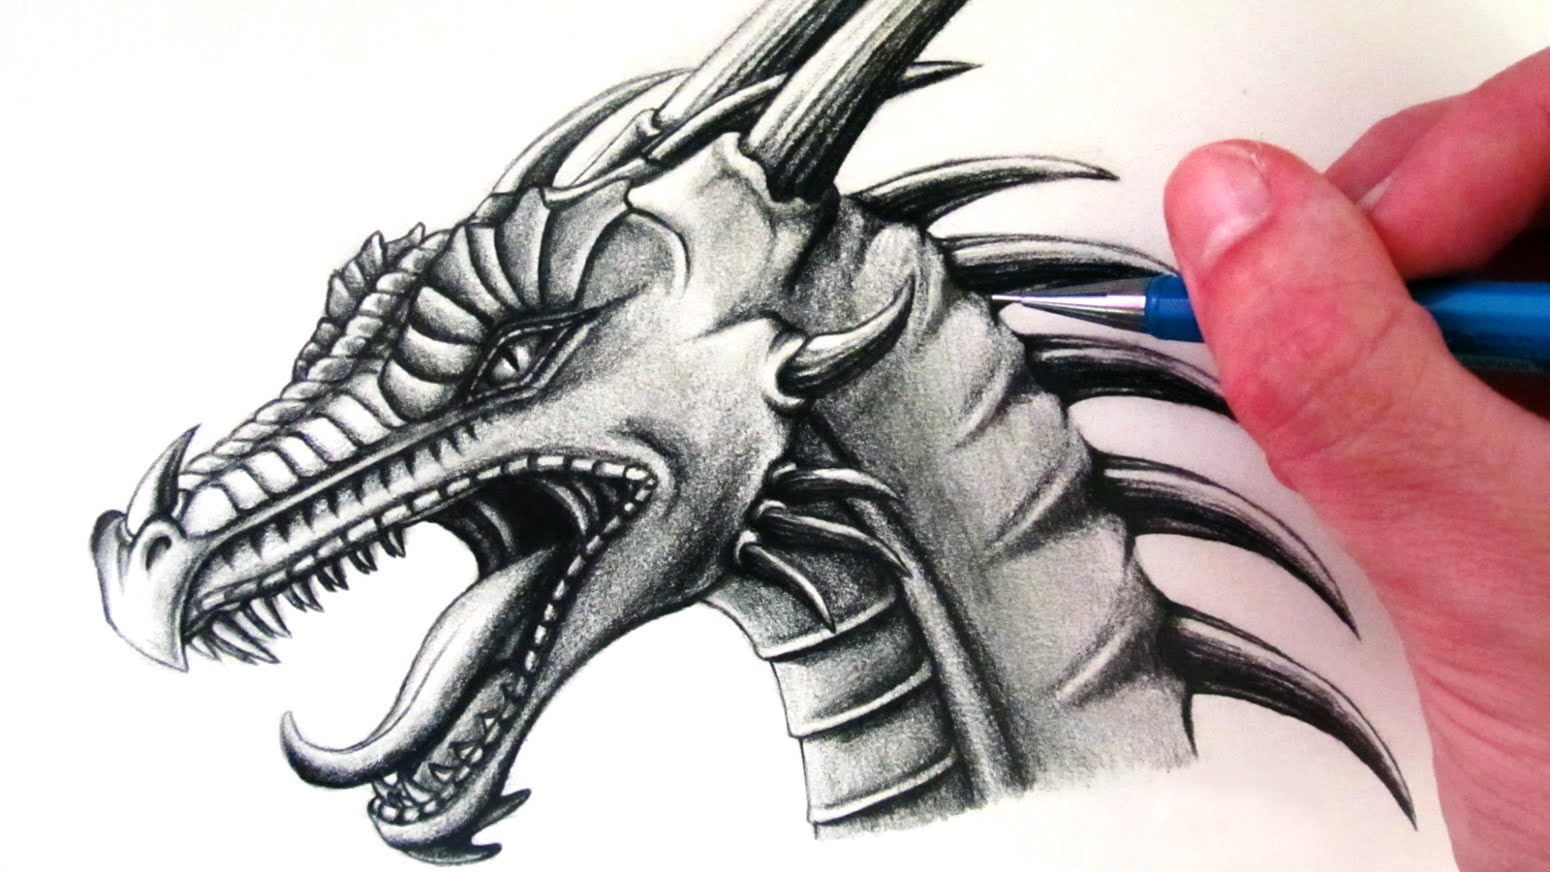 How to draw a dragon easy step by step for beginners for Cool detailed drawings